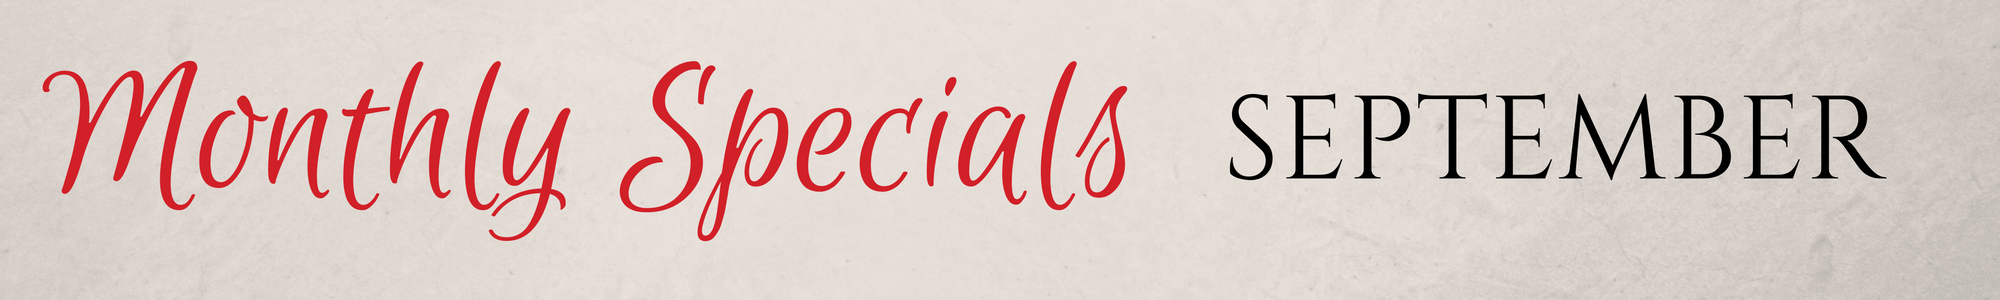 Monthly Specials for September